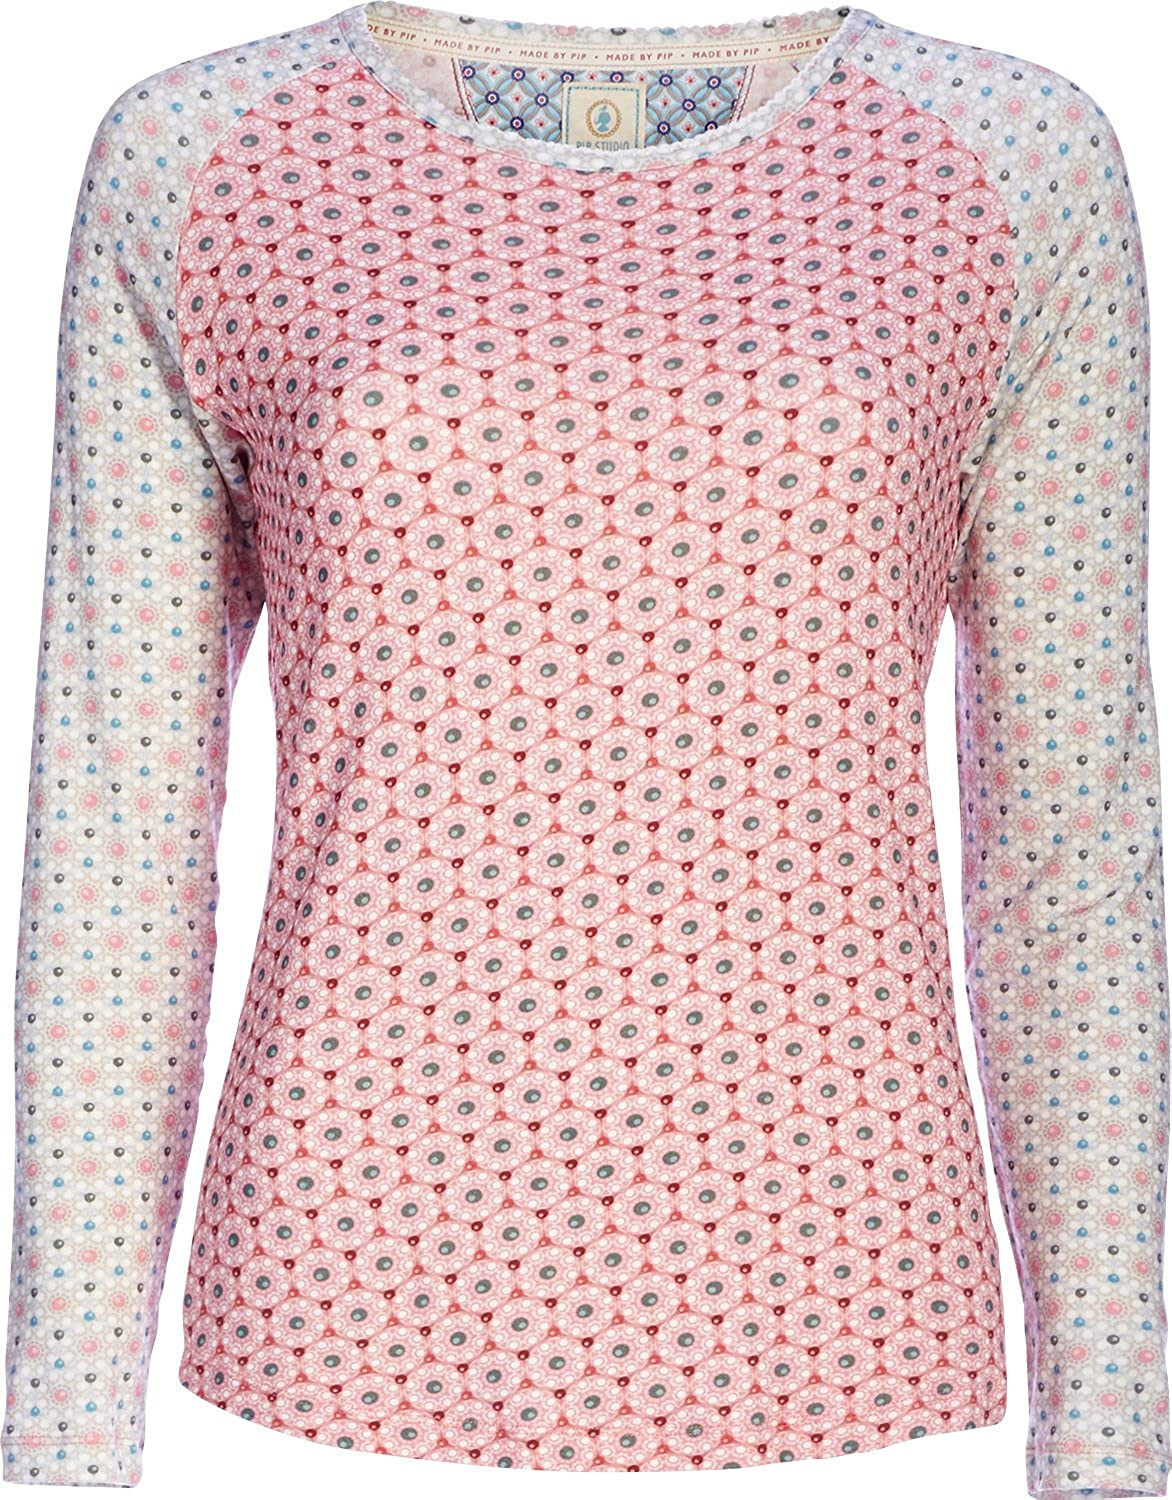 Pip Tommy Buttoms Up Top Long Sleeve / Schlafanzugoberteil - Pink